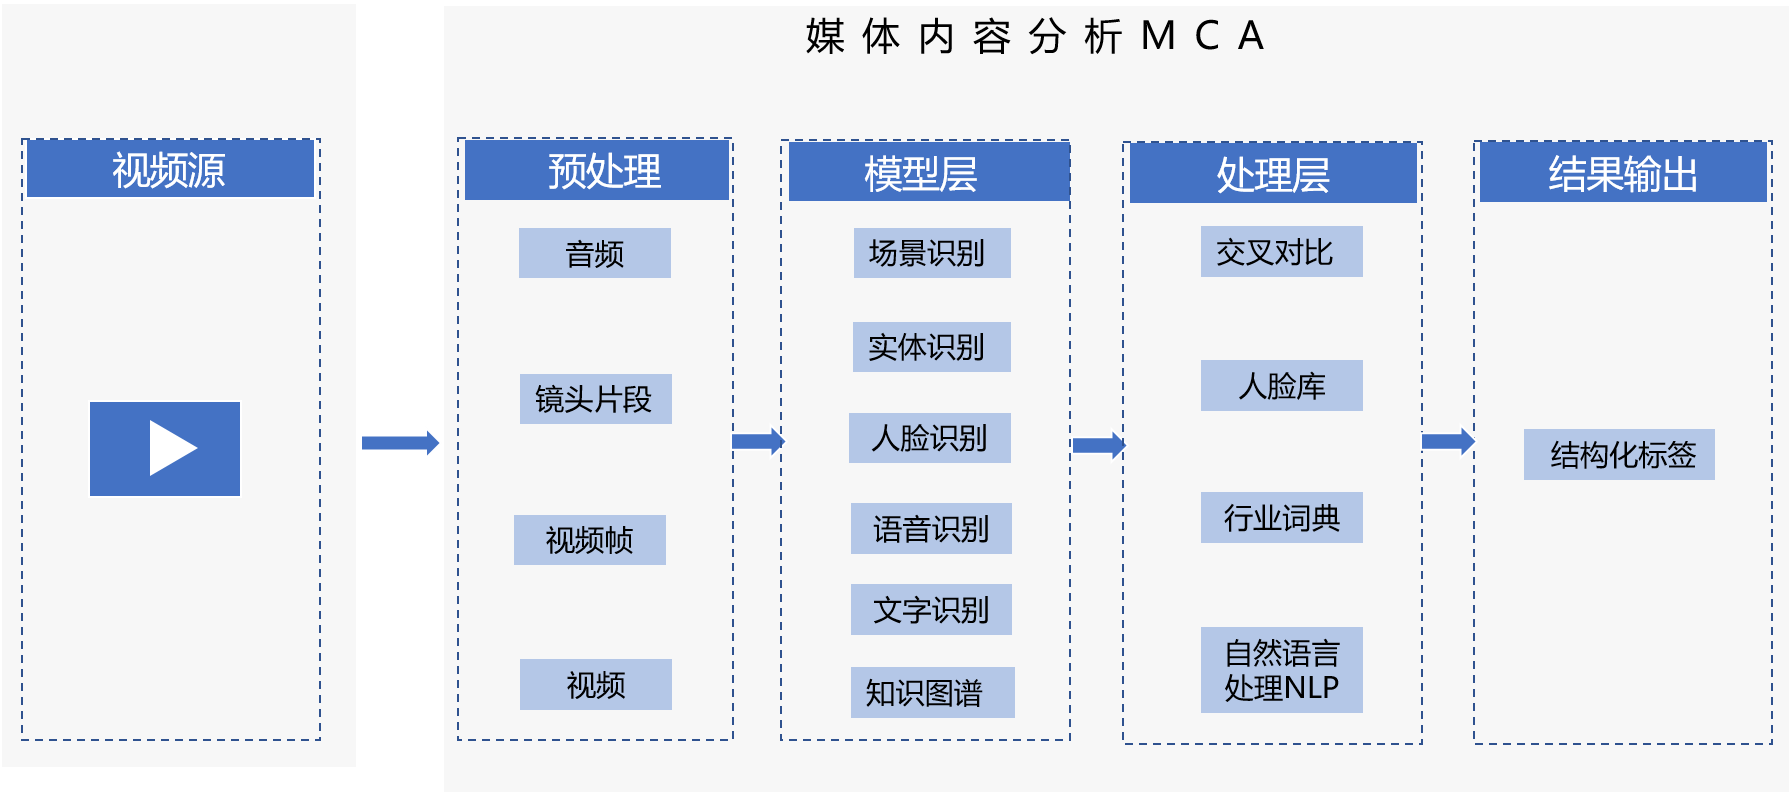 mca_architecture.png